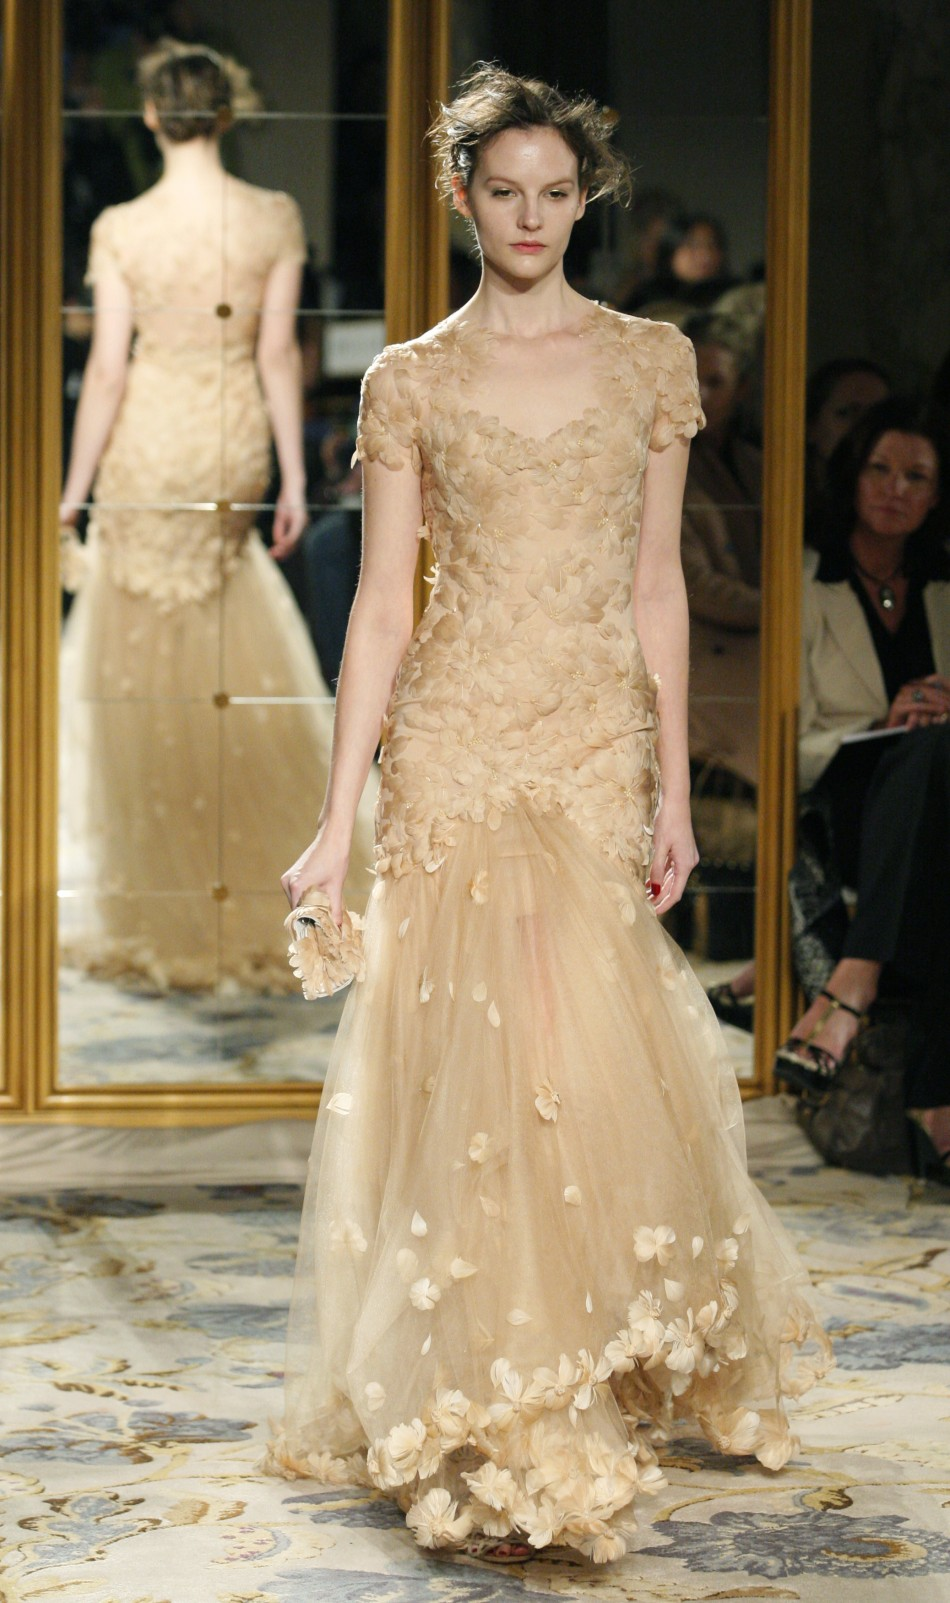 CFDA 2012 Fashion Awards to Premiere Exclusively on Style.com